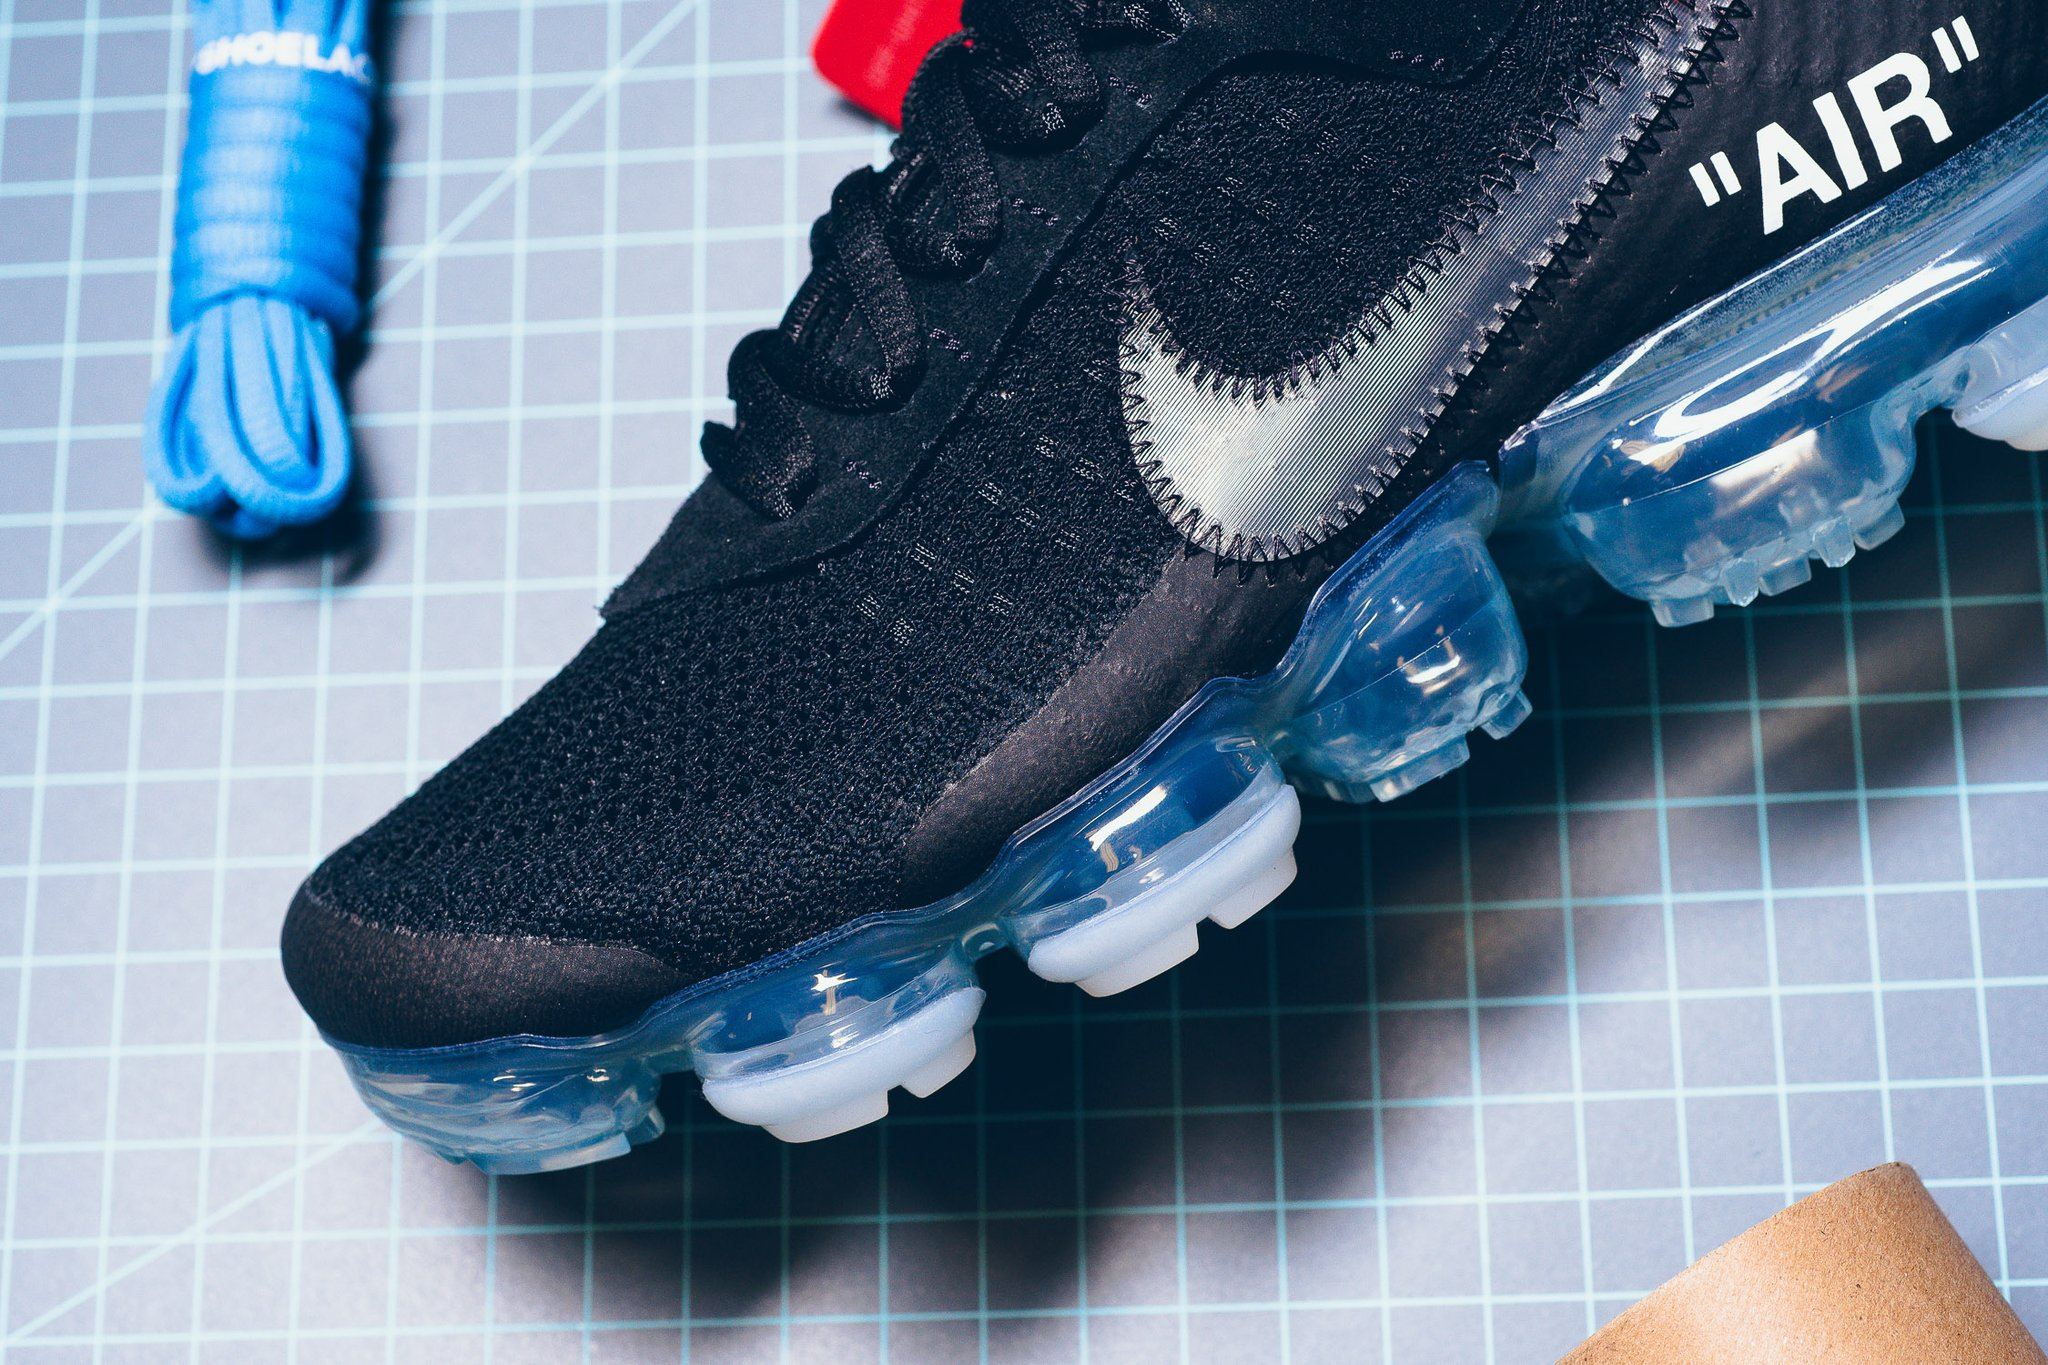 Off White x Nike Air Vapormax Black